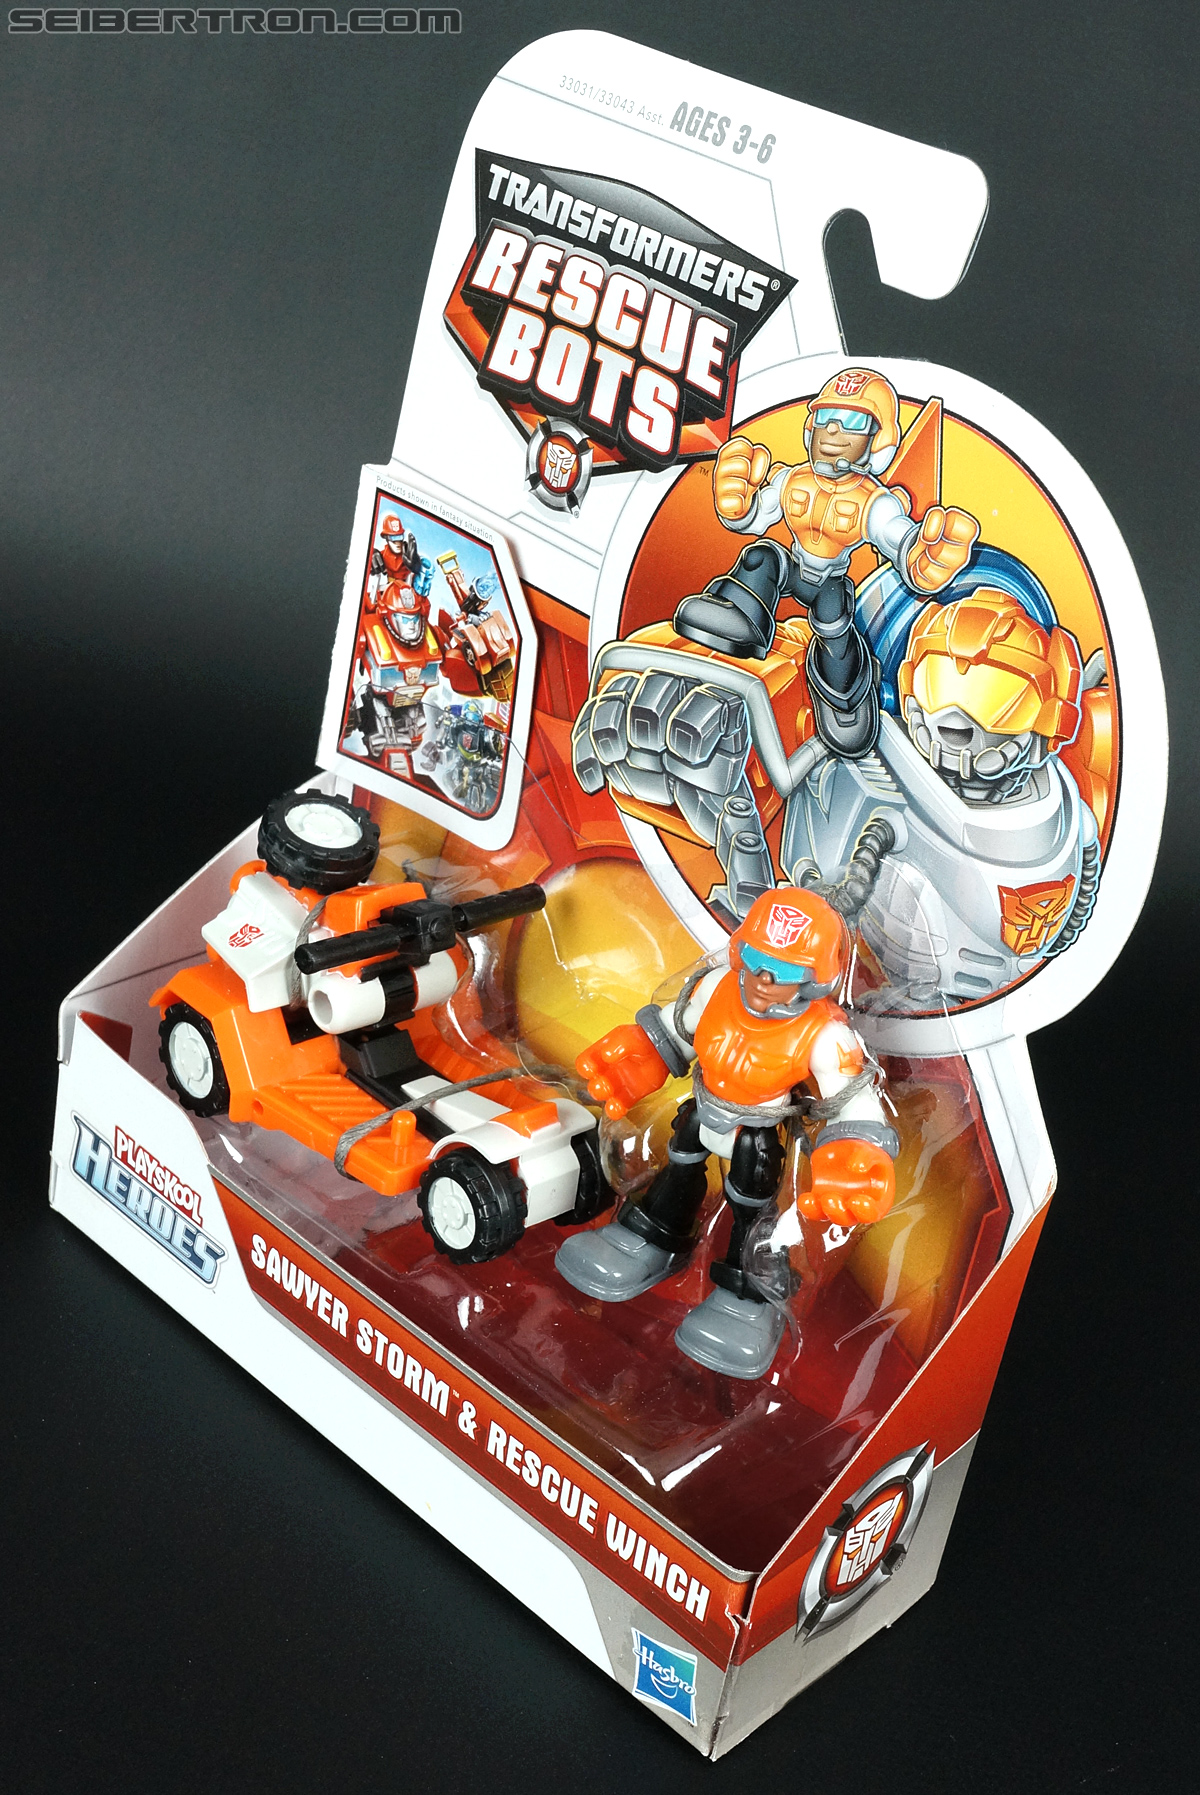 Transformers Rescue Bots Sawyer Storm & Rescue Winch (Image #13 of 75)